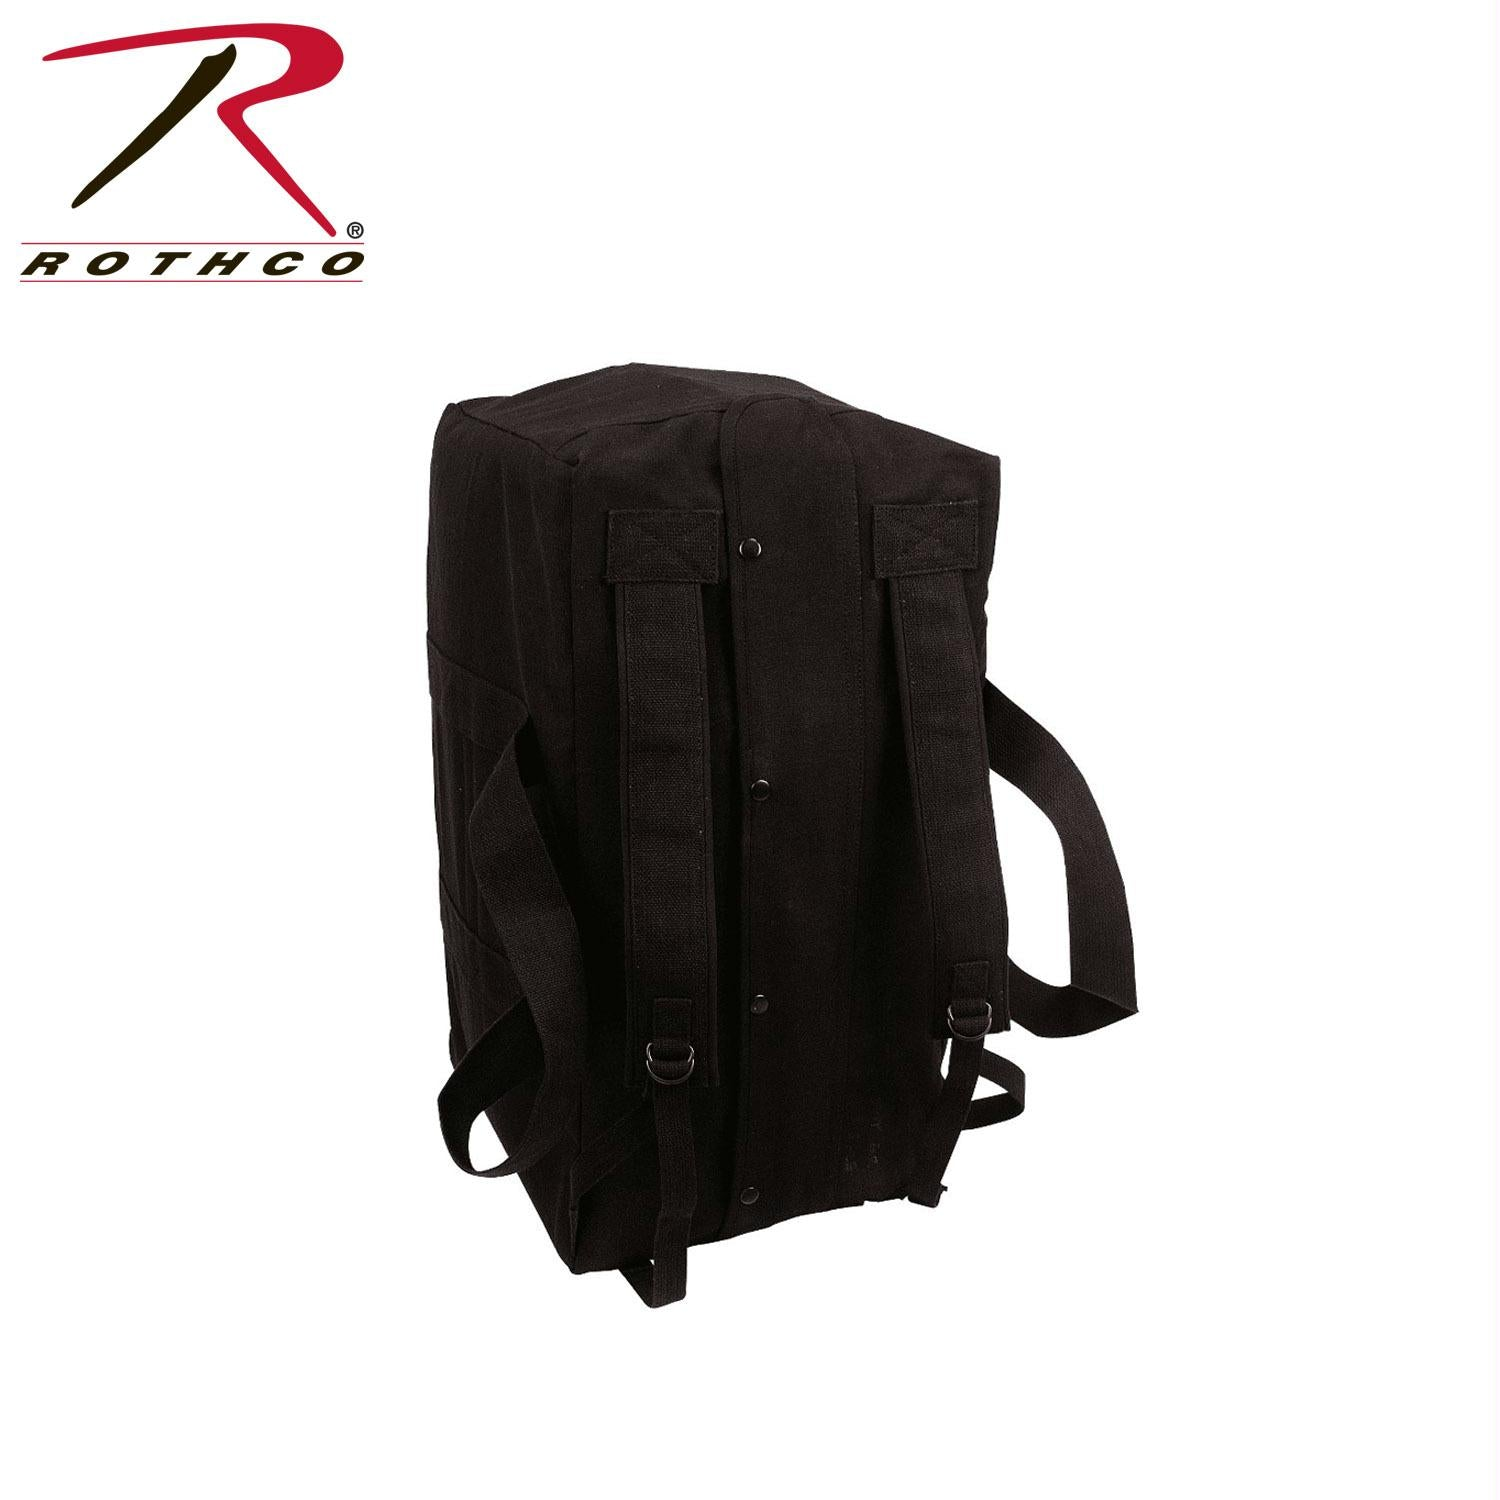 Rothco Canvas Mossad Type Tactical Canvas Cargo Bag - Black